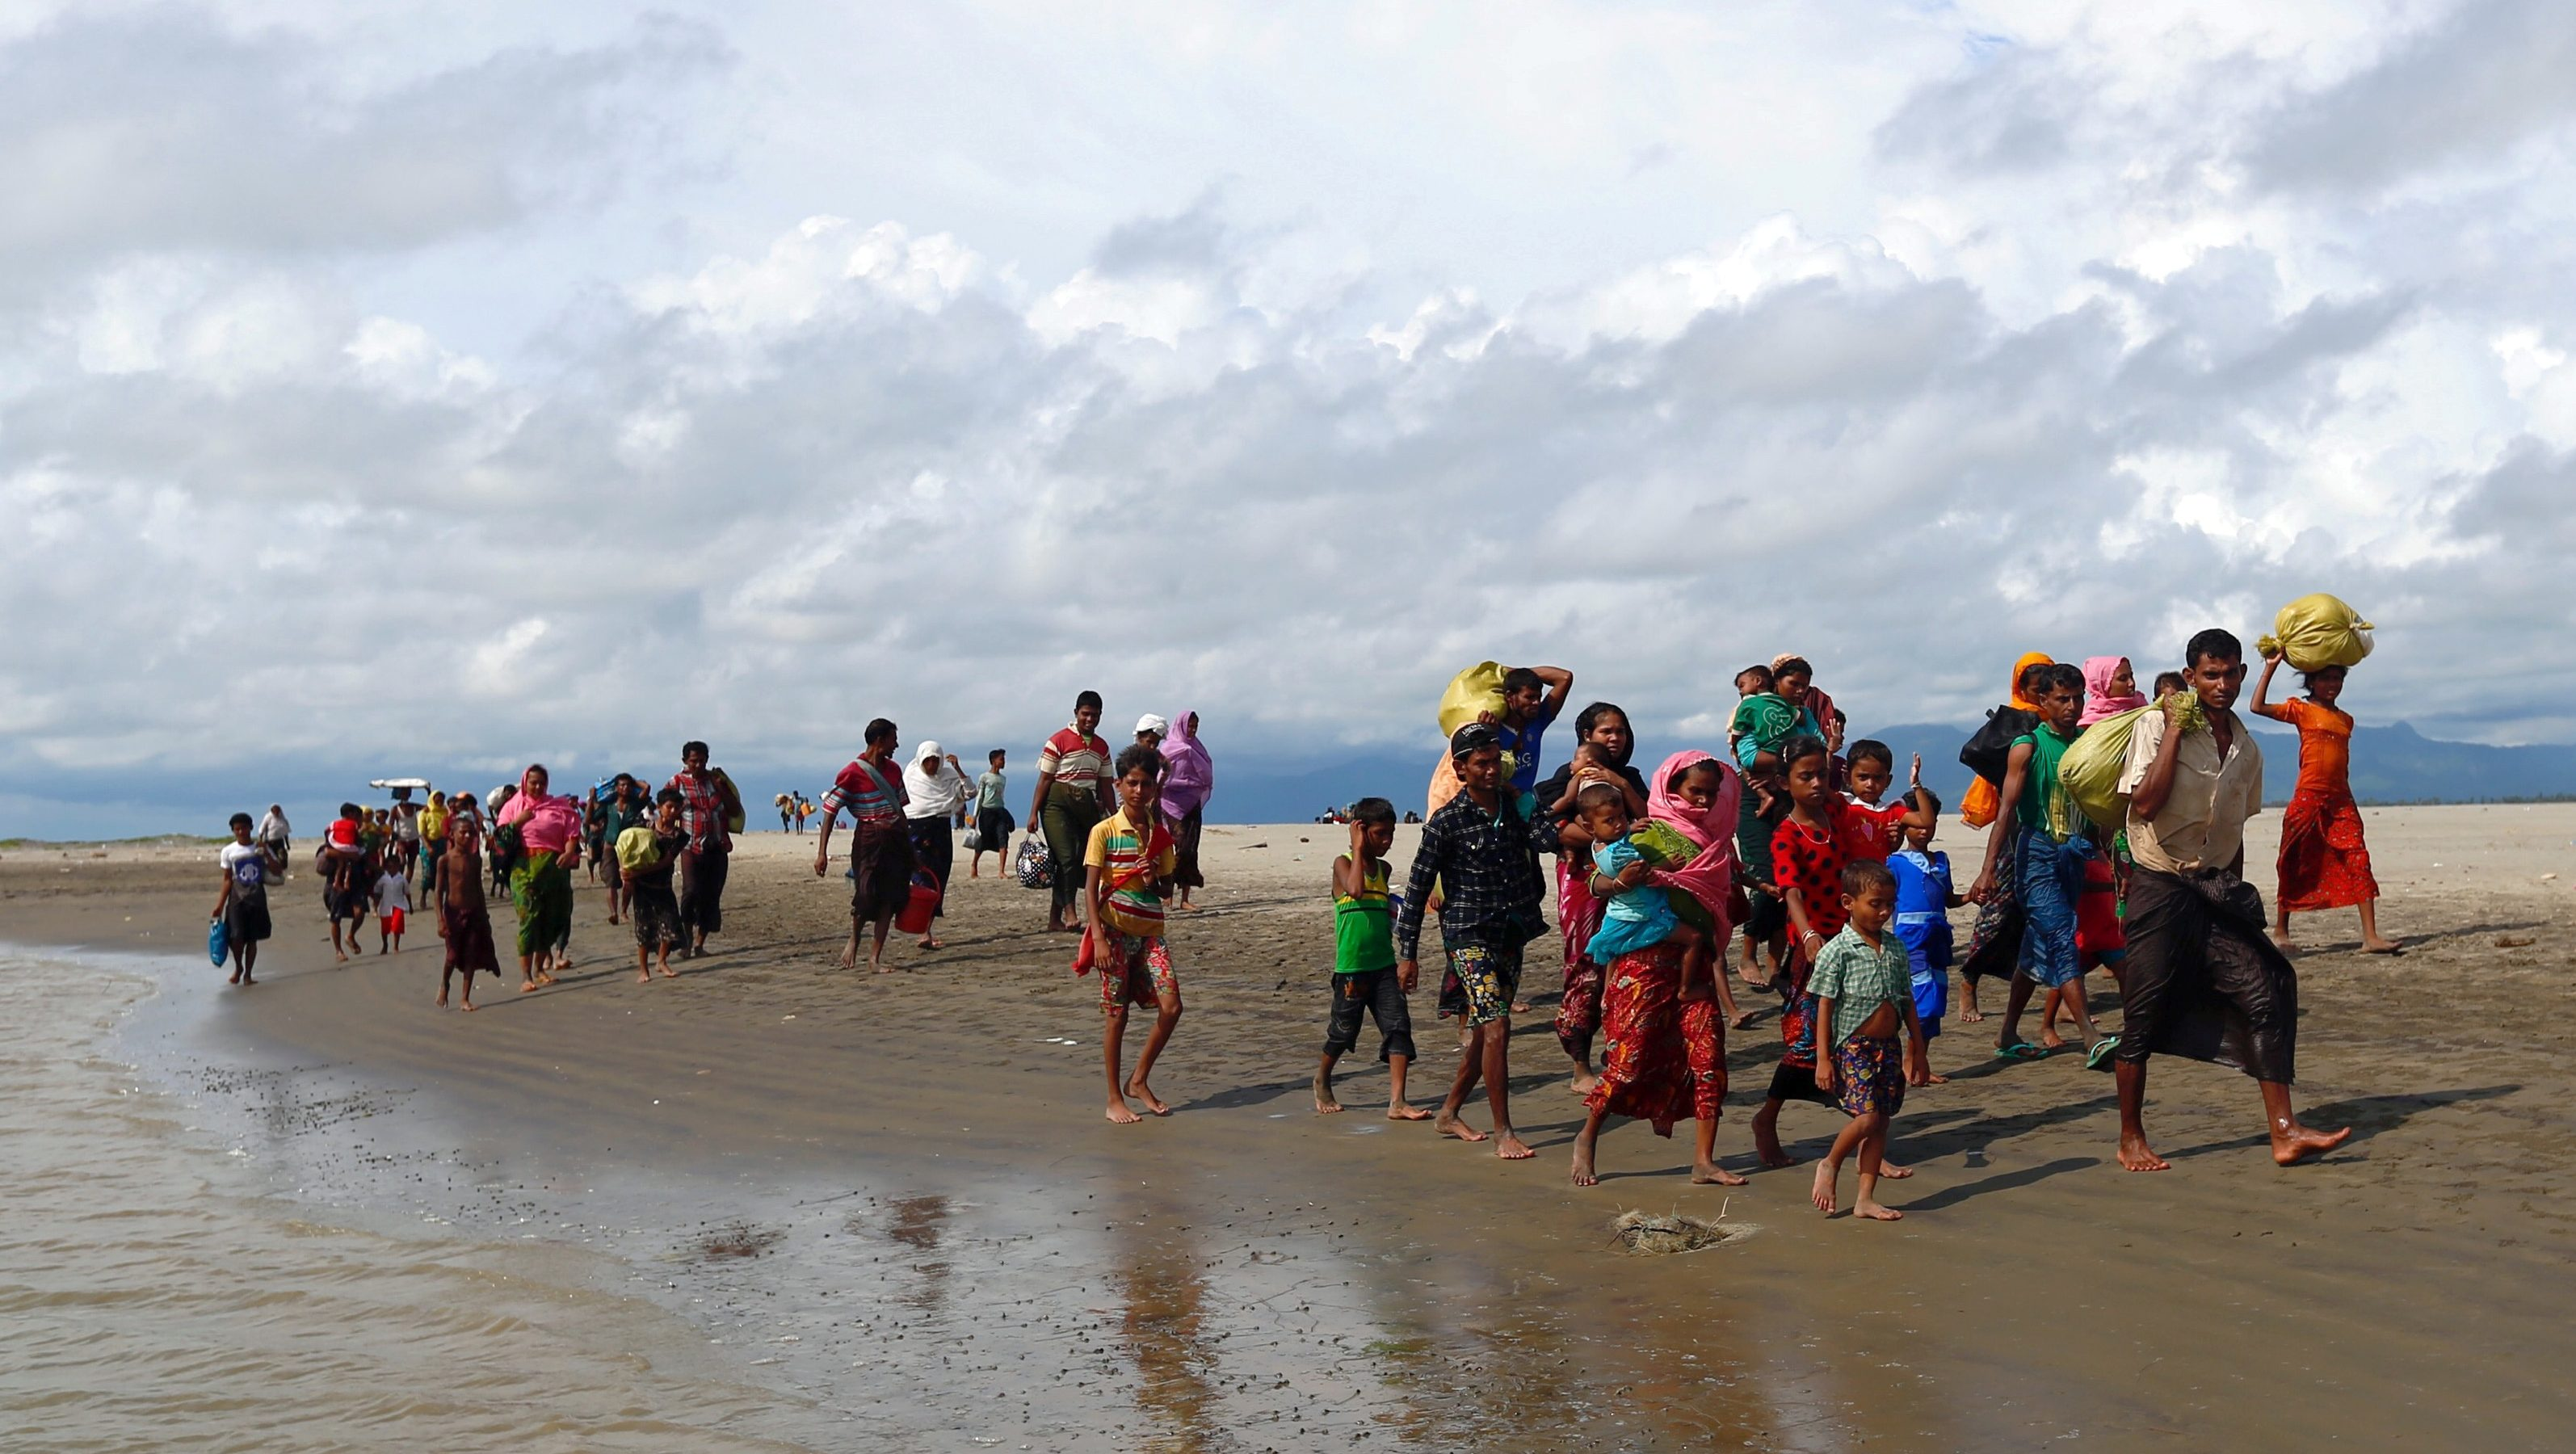 Rohingya refugees walk on the shore after crossing the Bangladesh-Myanmar border by boat through the Bay of Bengal in Shah Porir Dwip, Bangladesh September 11, 2017.